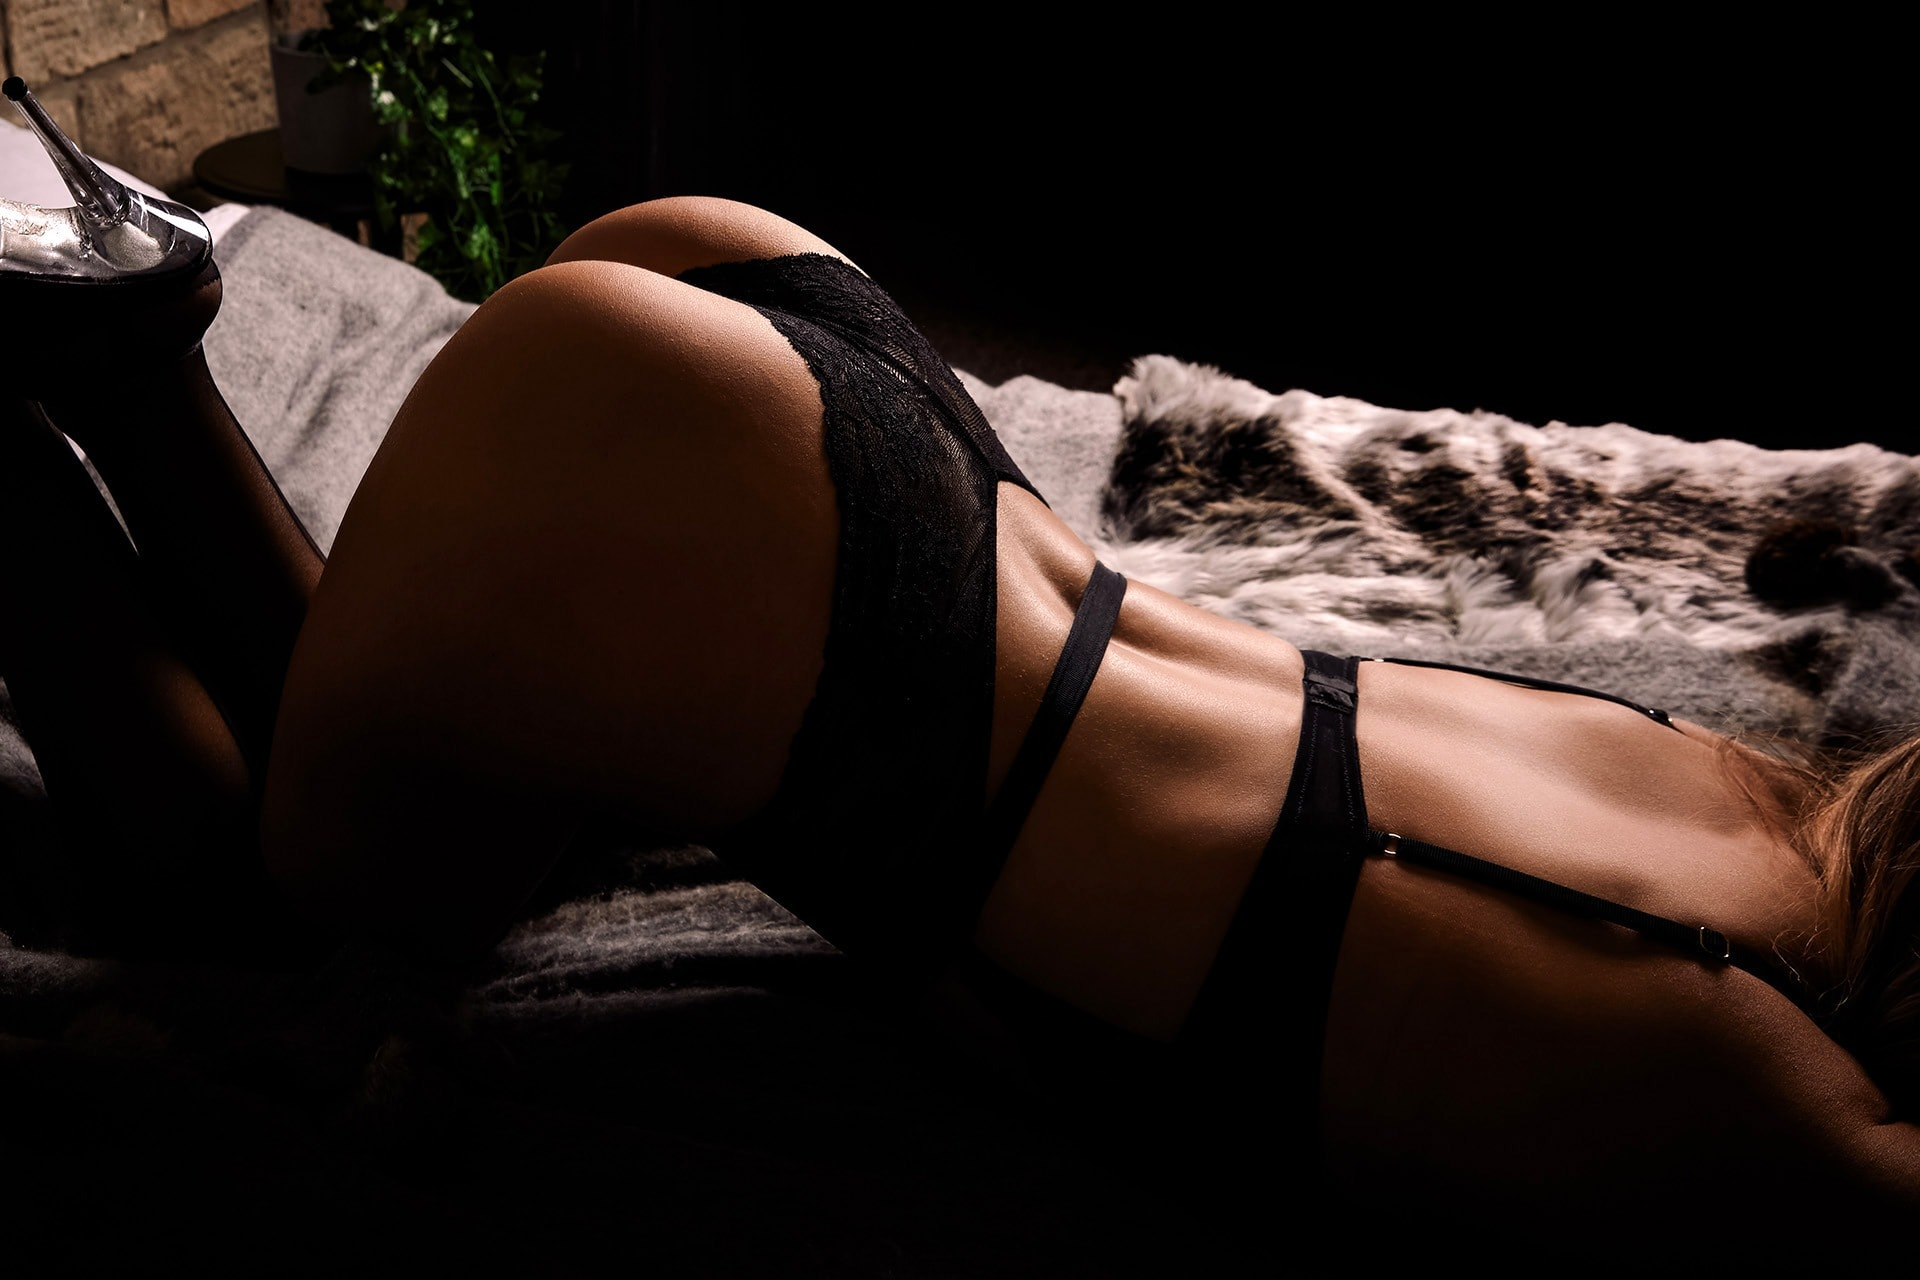 chest down bum up boudoir pose on bed